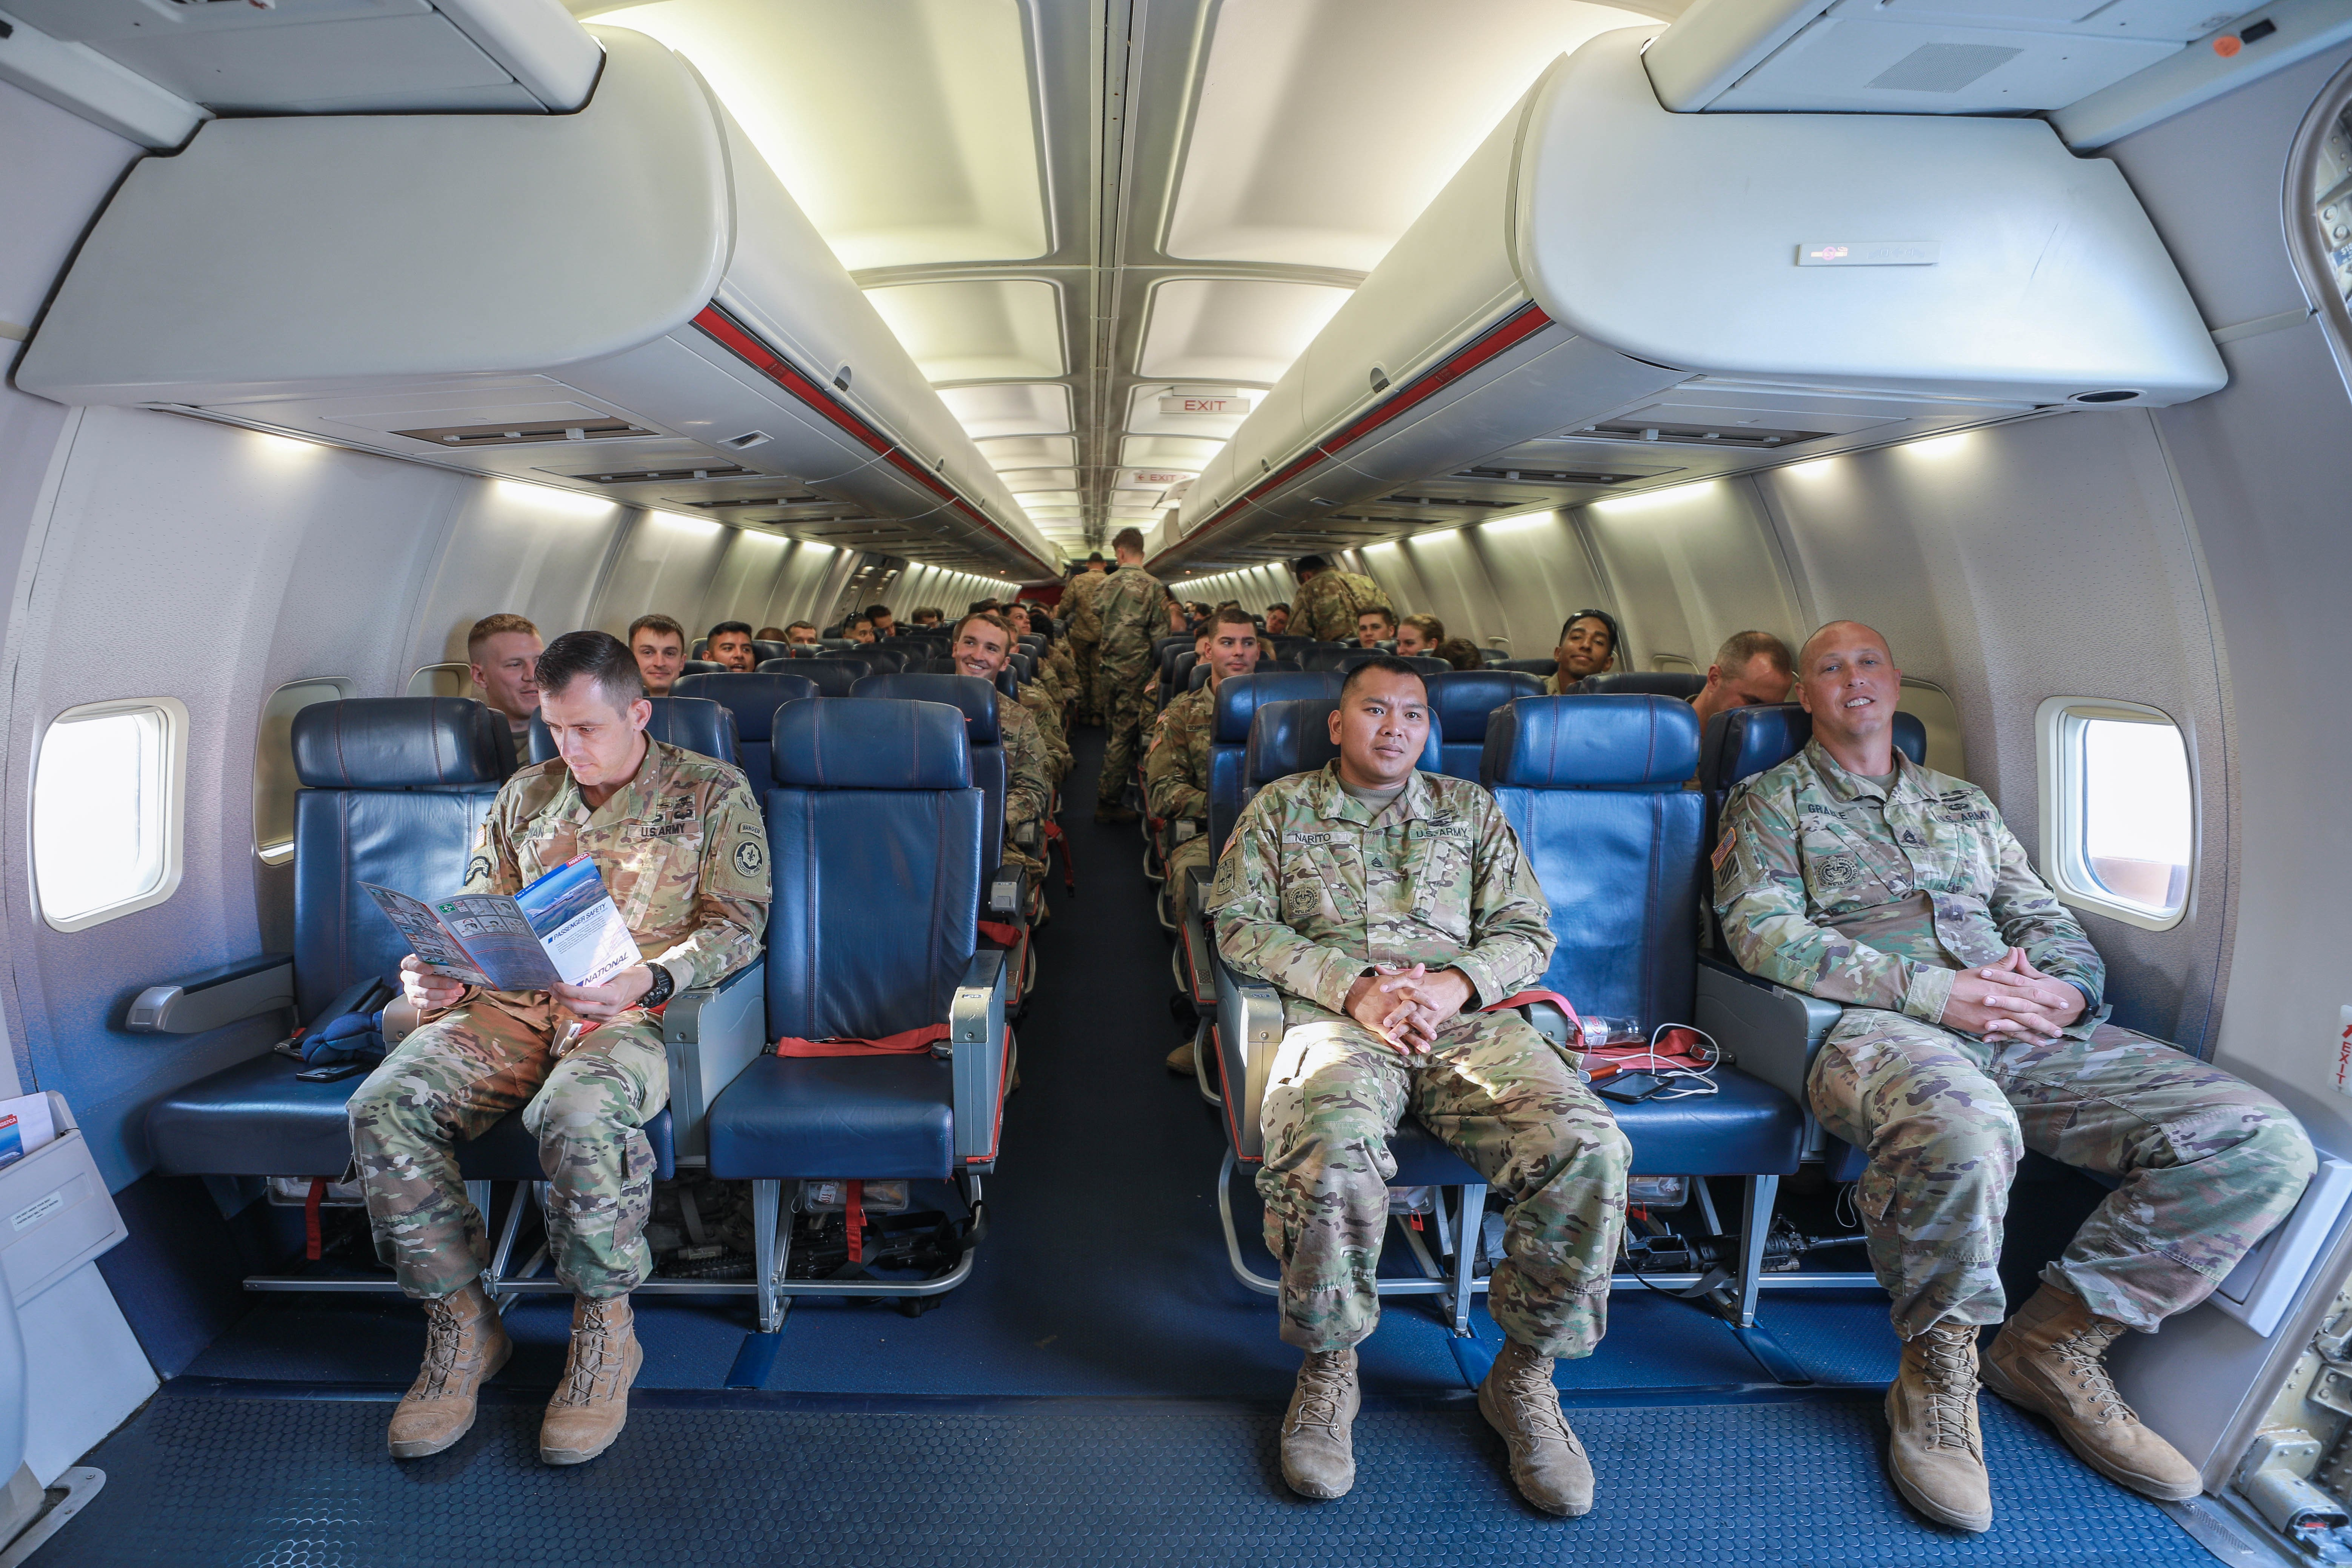 DOD announces overhaul to Defense Travel System in contract award  Article  The United States Army